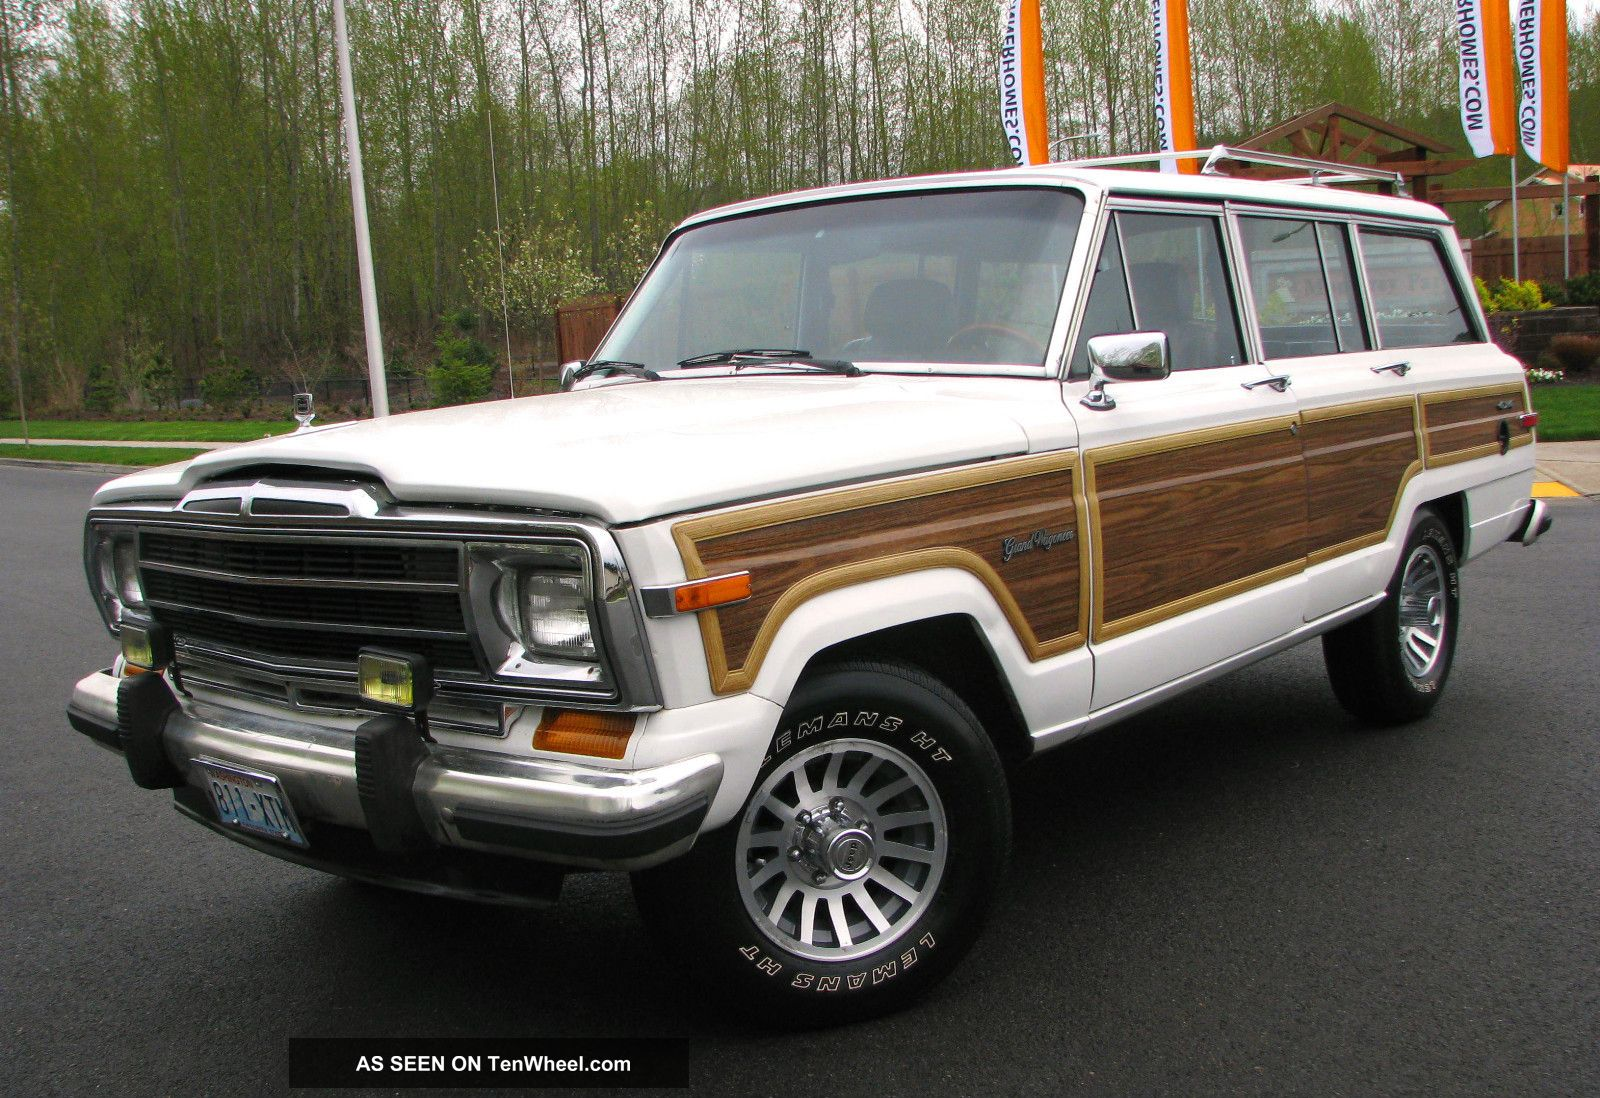 1989 Jeep Grand Wagoneer Classic Vintage 4x4 Fully